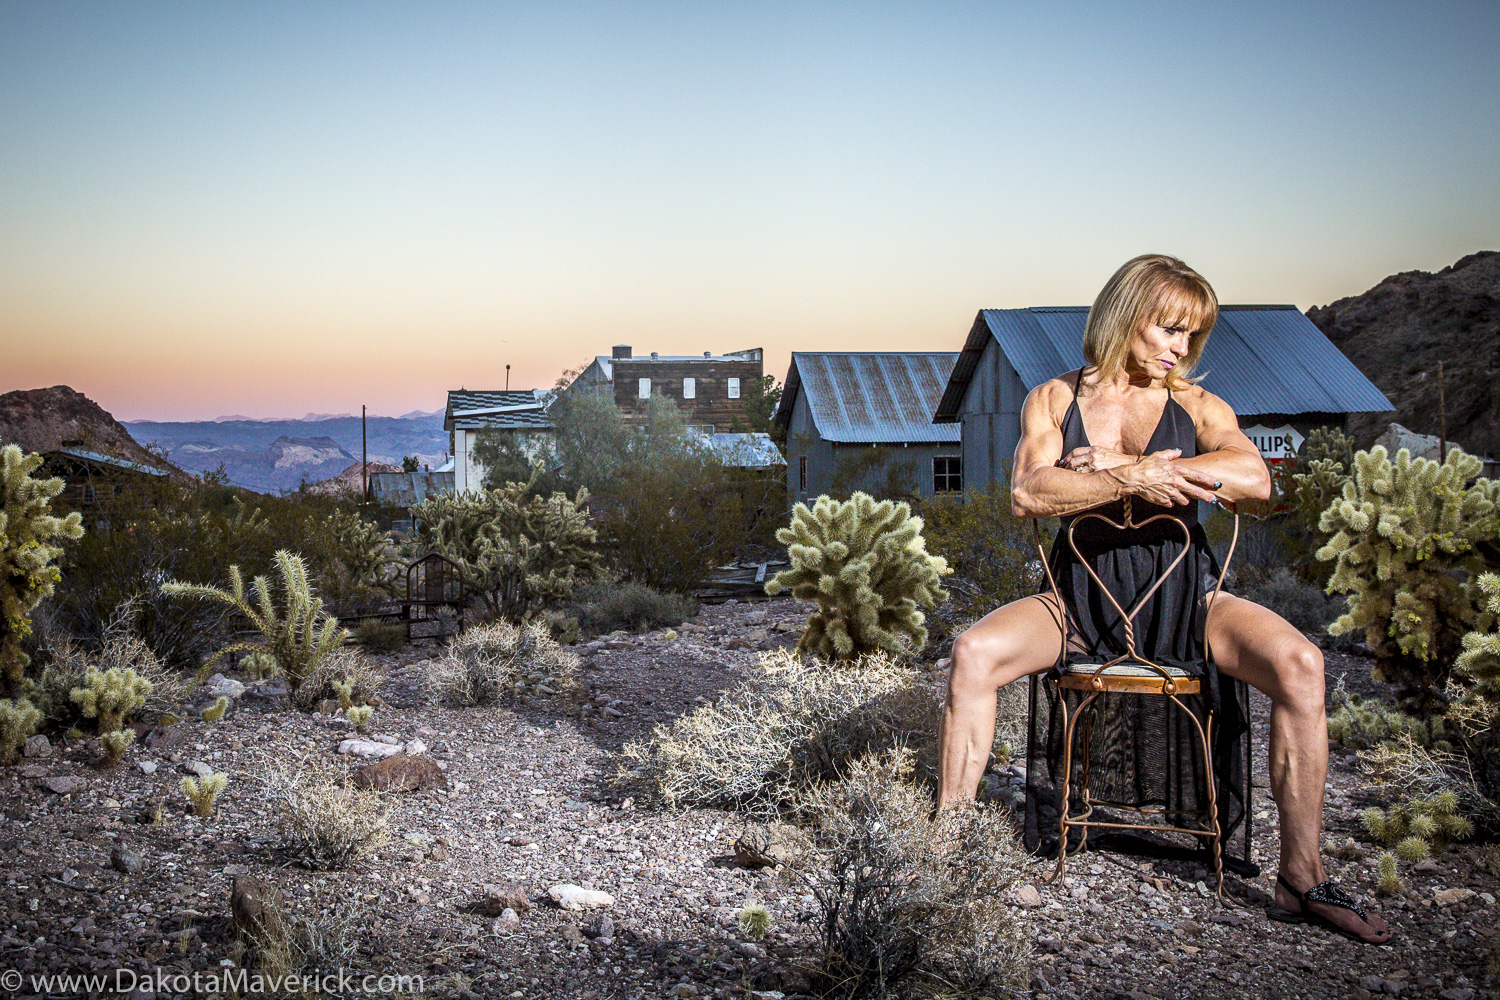 Vancouver Fitness Photographer - Nelson Ghost Town, Nevada - Fashion Fitness Shoot (19 of 40).jpg